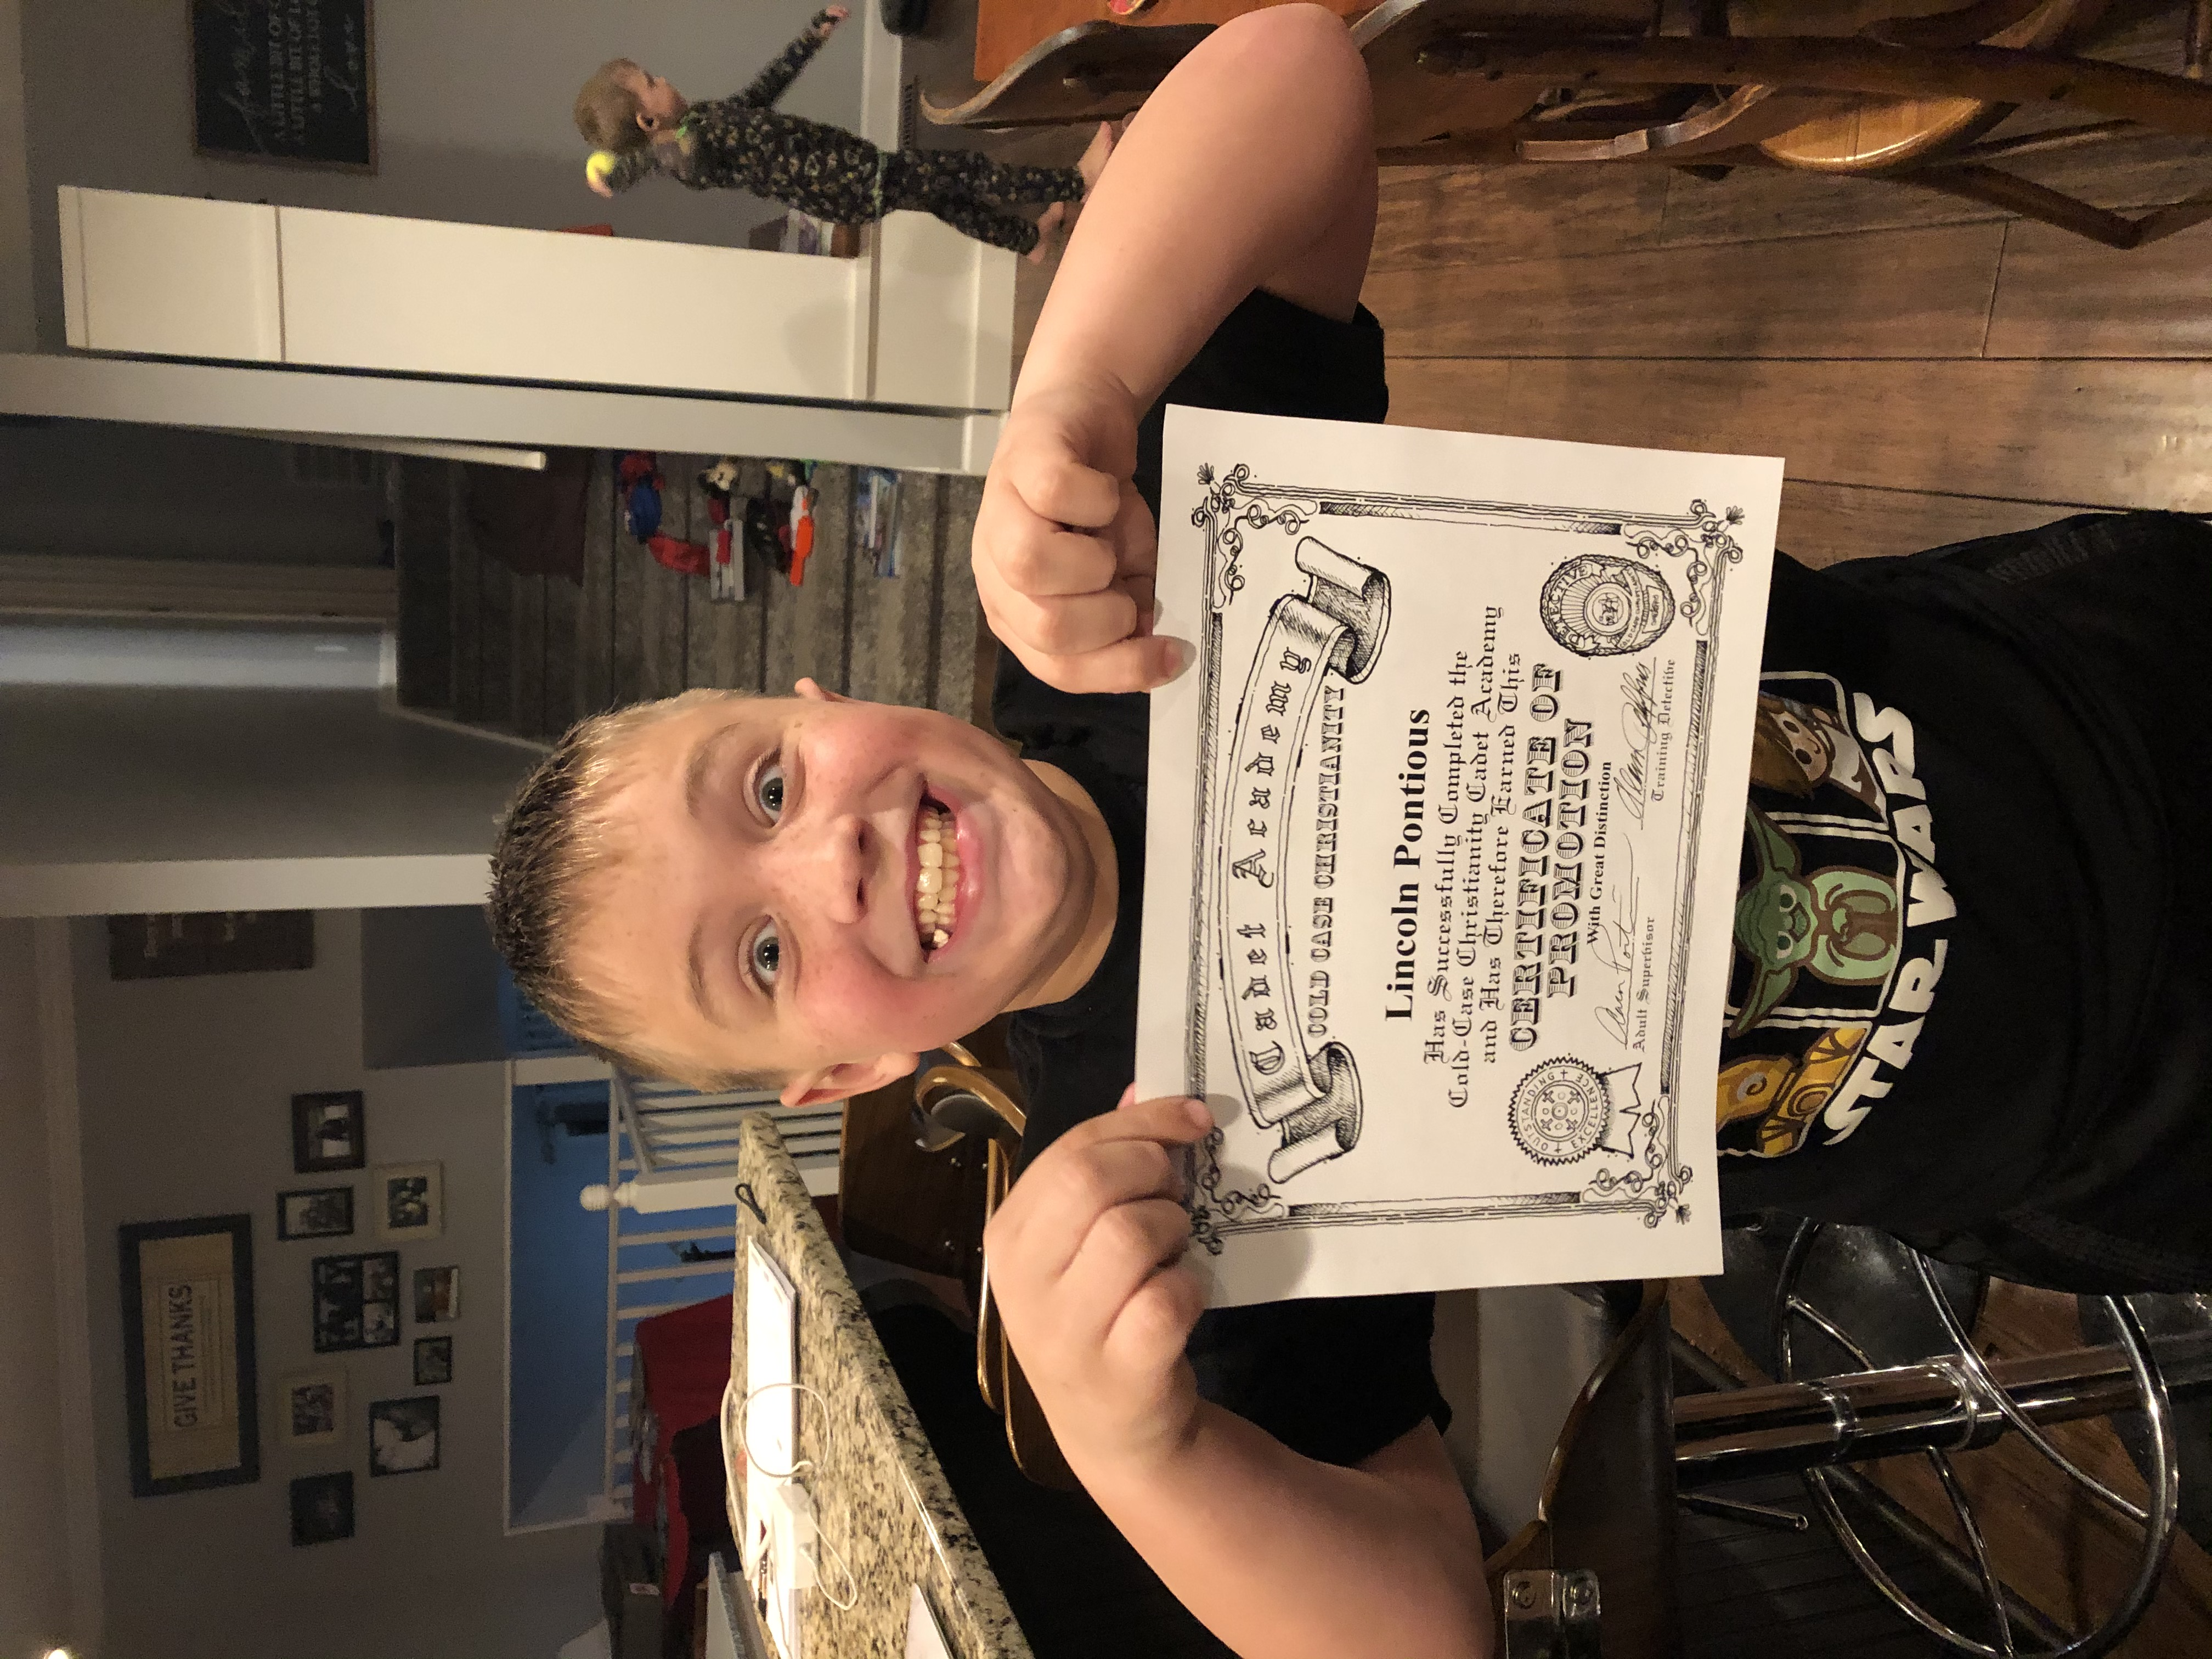 Lincoln Pontious is the latest HONOR CADET. Congratulations young man!